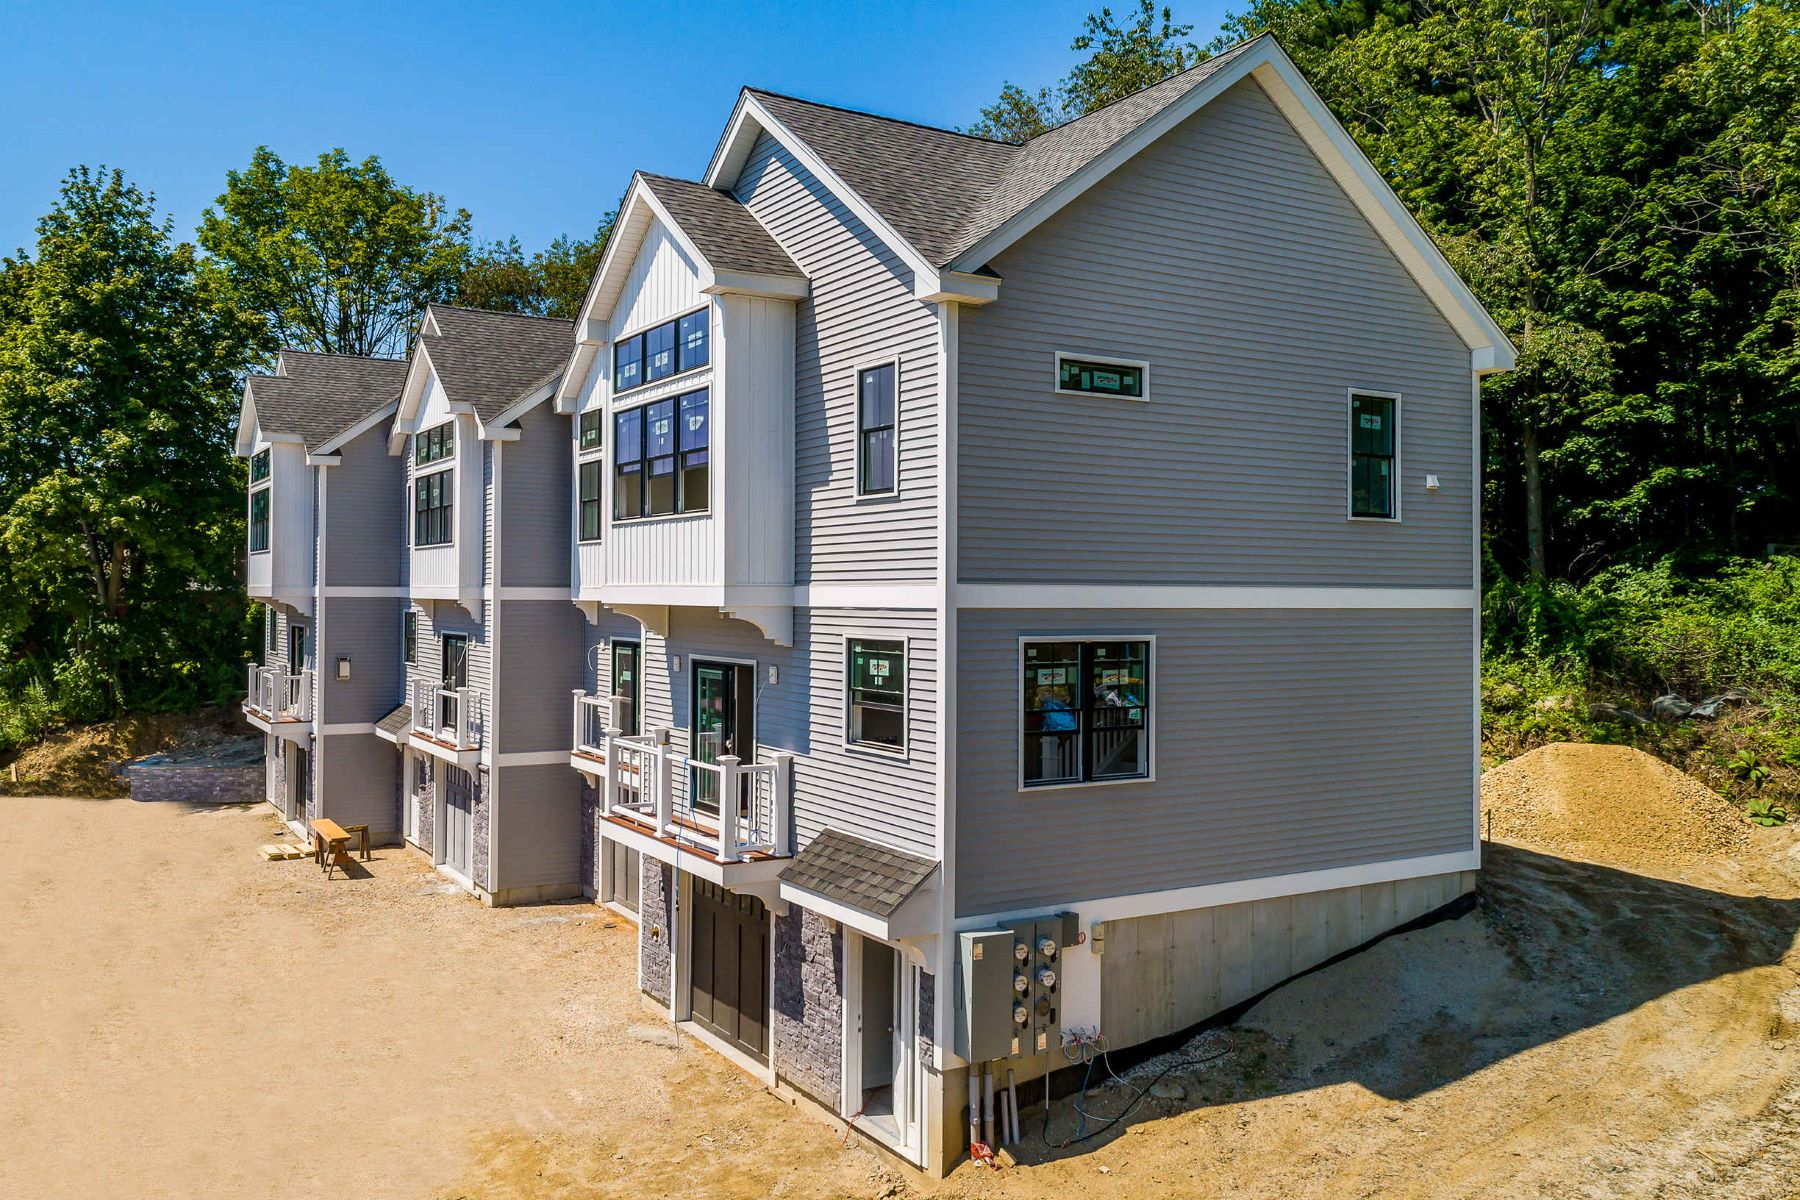 Condominiums for Active at Newly Constructed Condominium in Kittery Foreside 12 Bridge Street Unit 1 Kittery, Maine 03904 United States